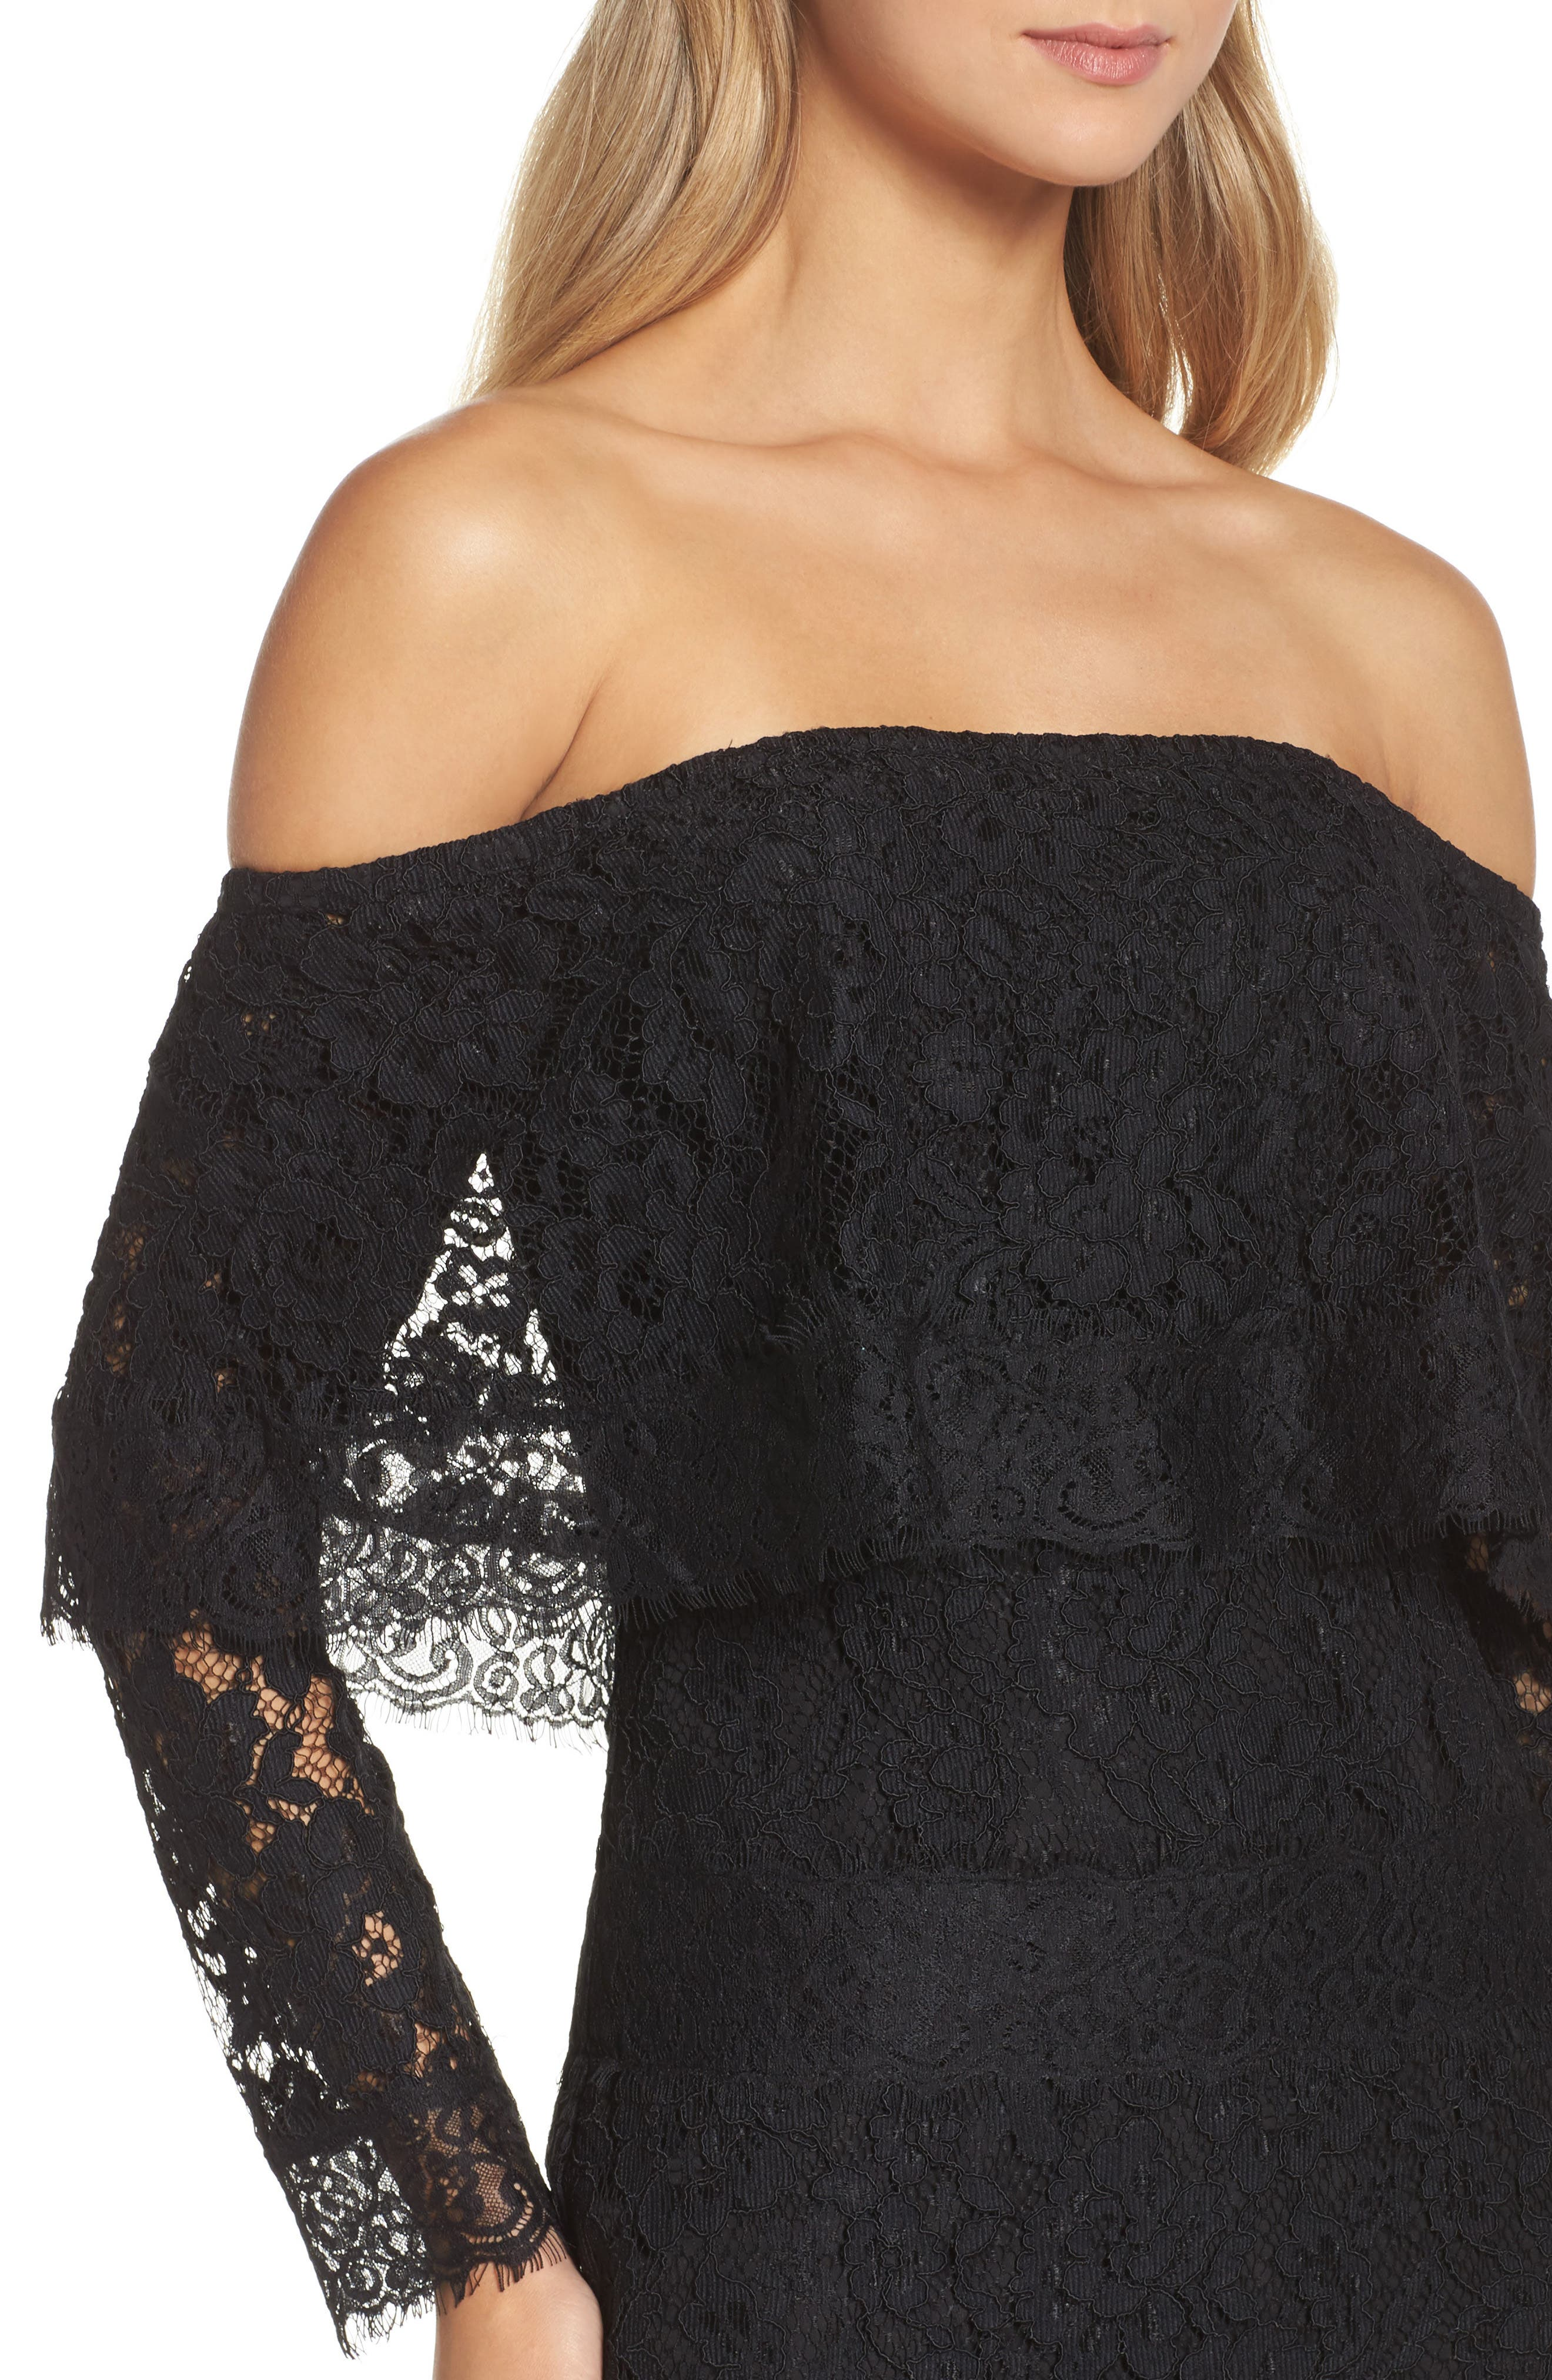 Soiree Lace Off the Shoulder Gown,                             Alternate thumbnail 4, color,                             001